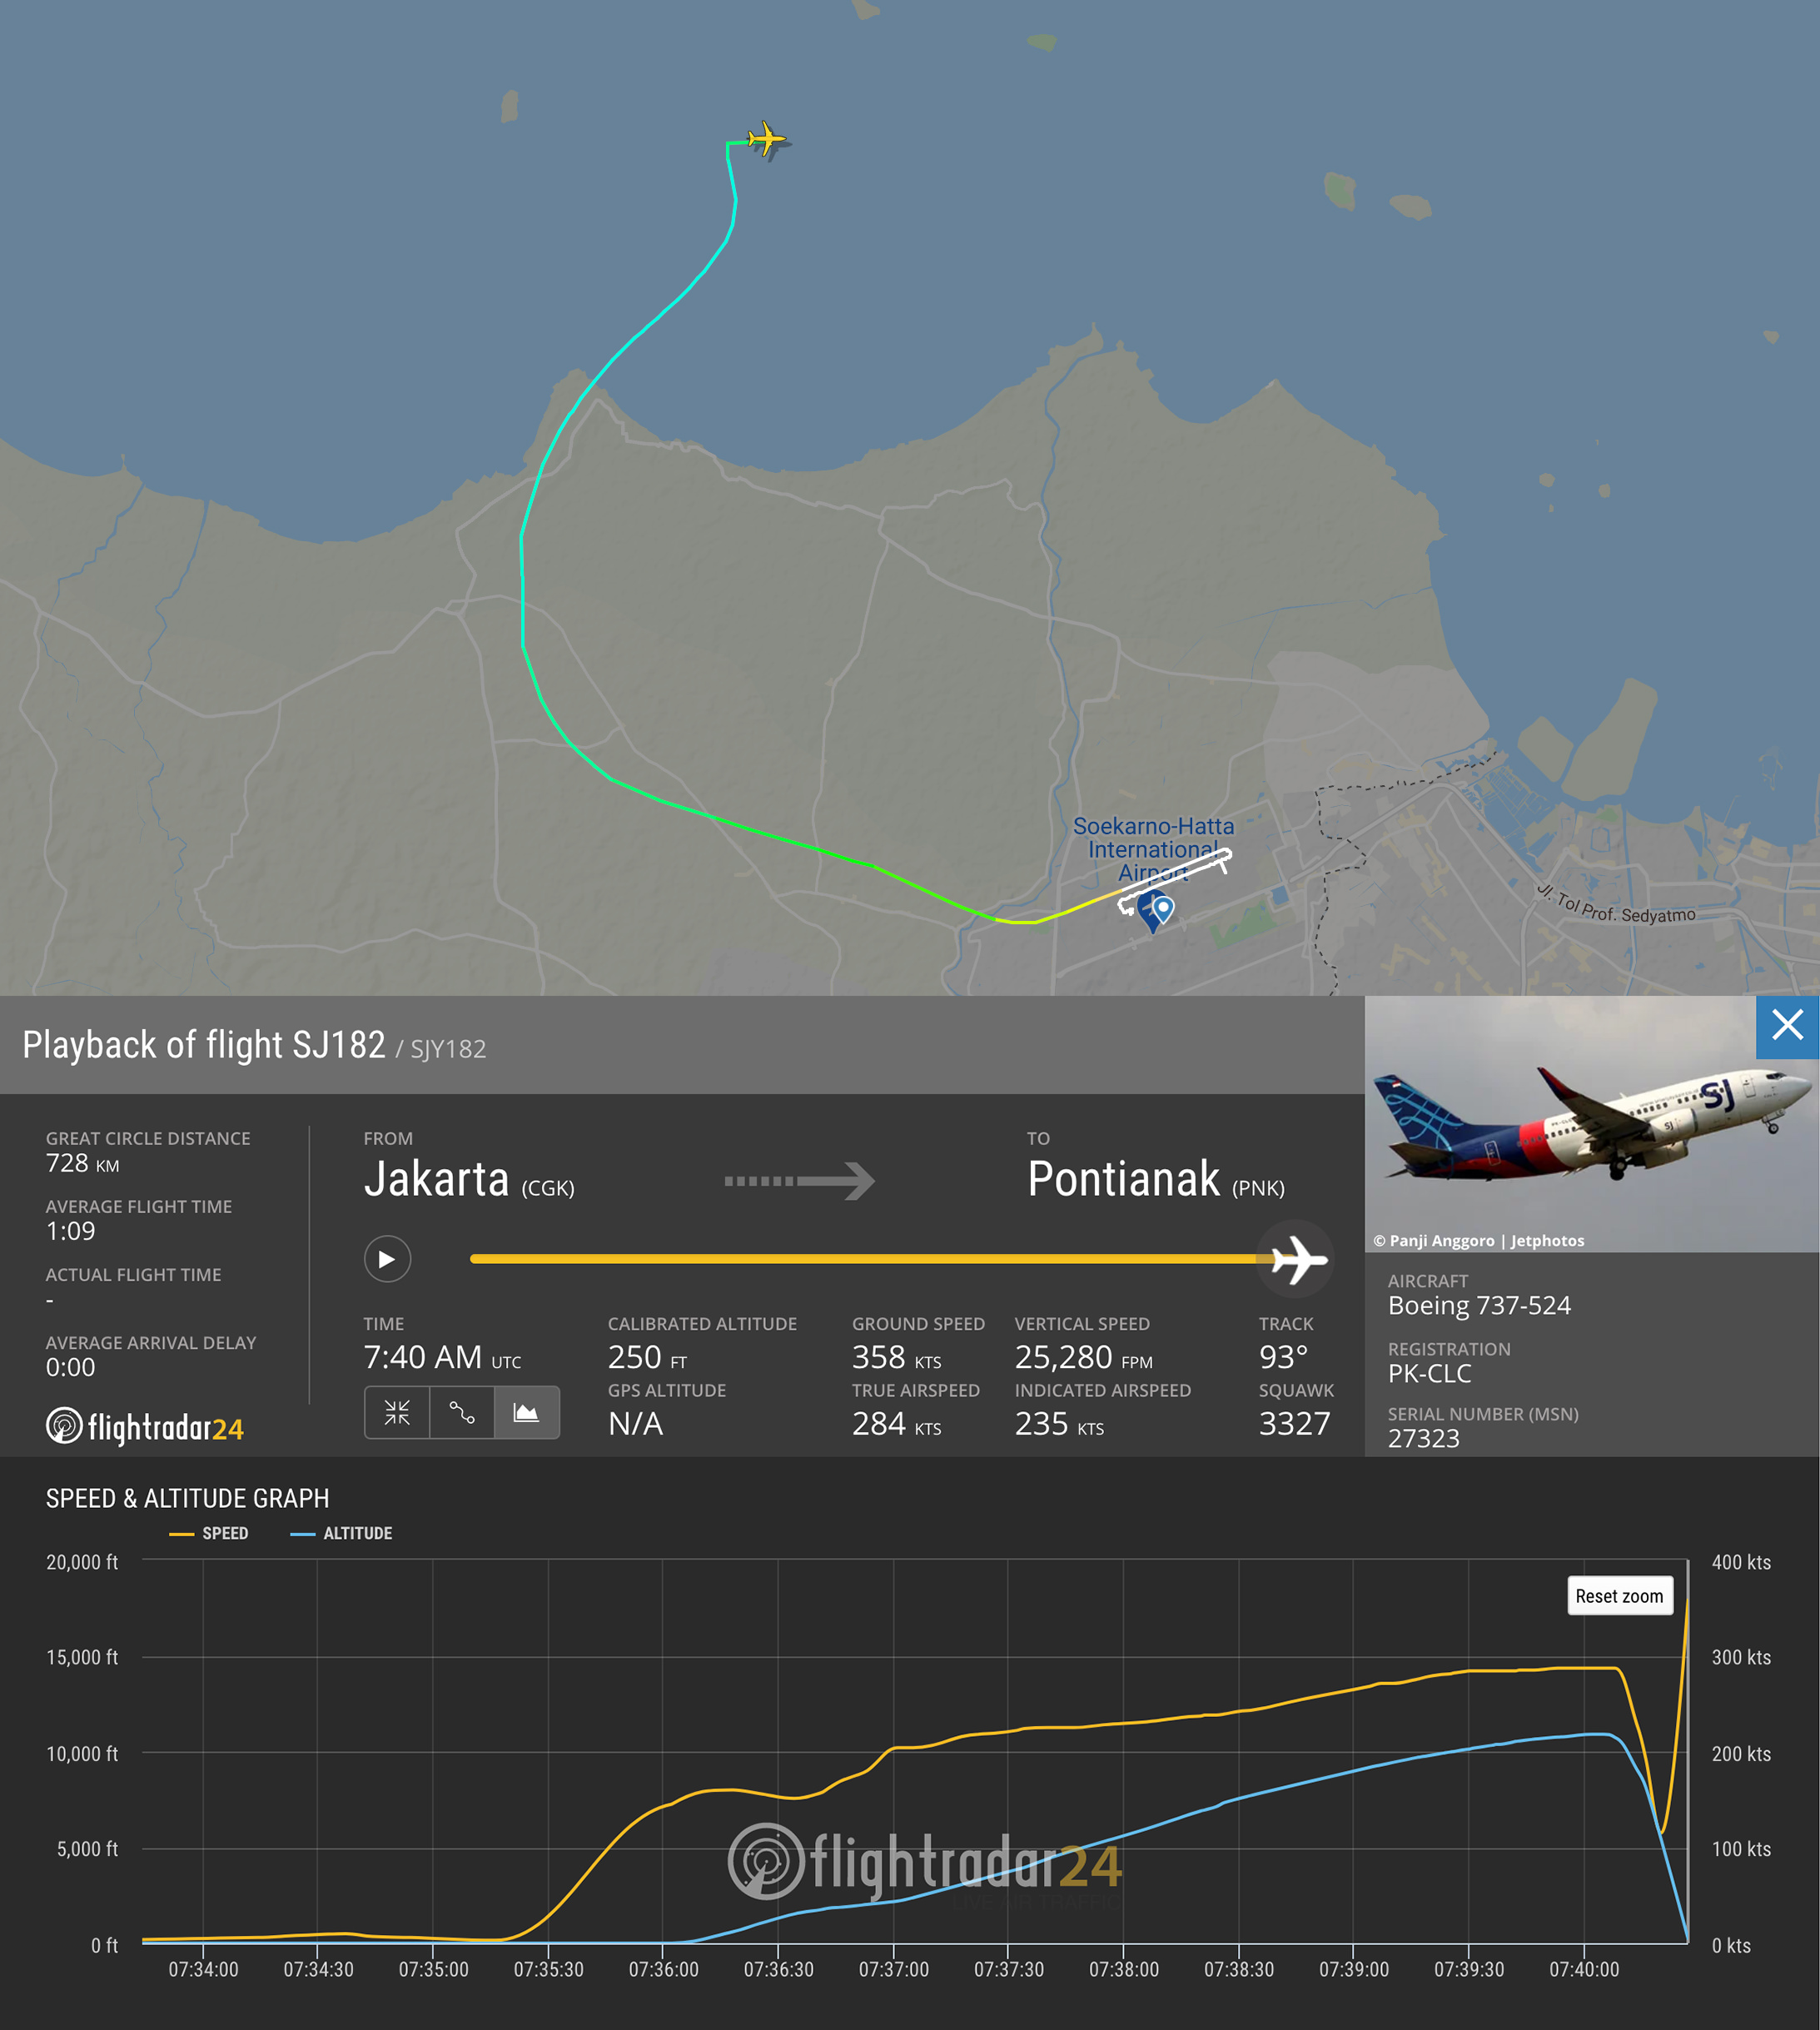 Flight path and data graph of speed and altitude for SJ182